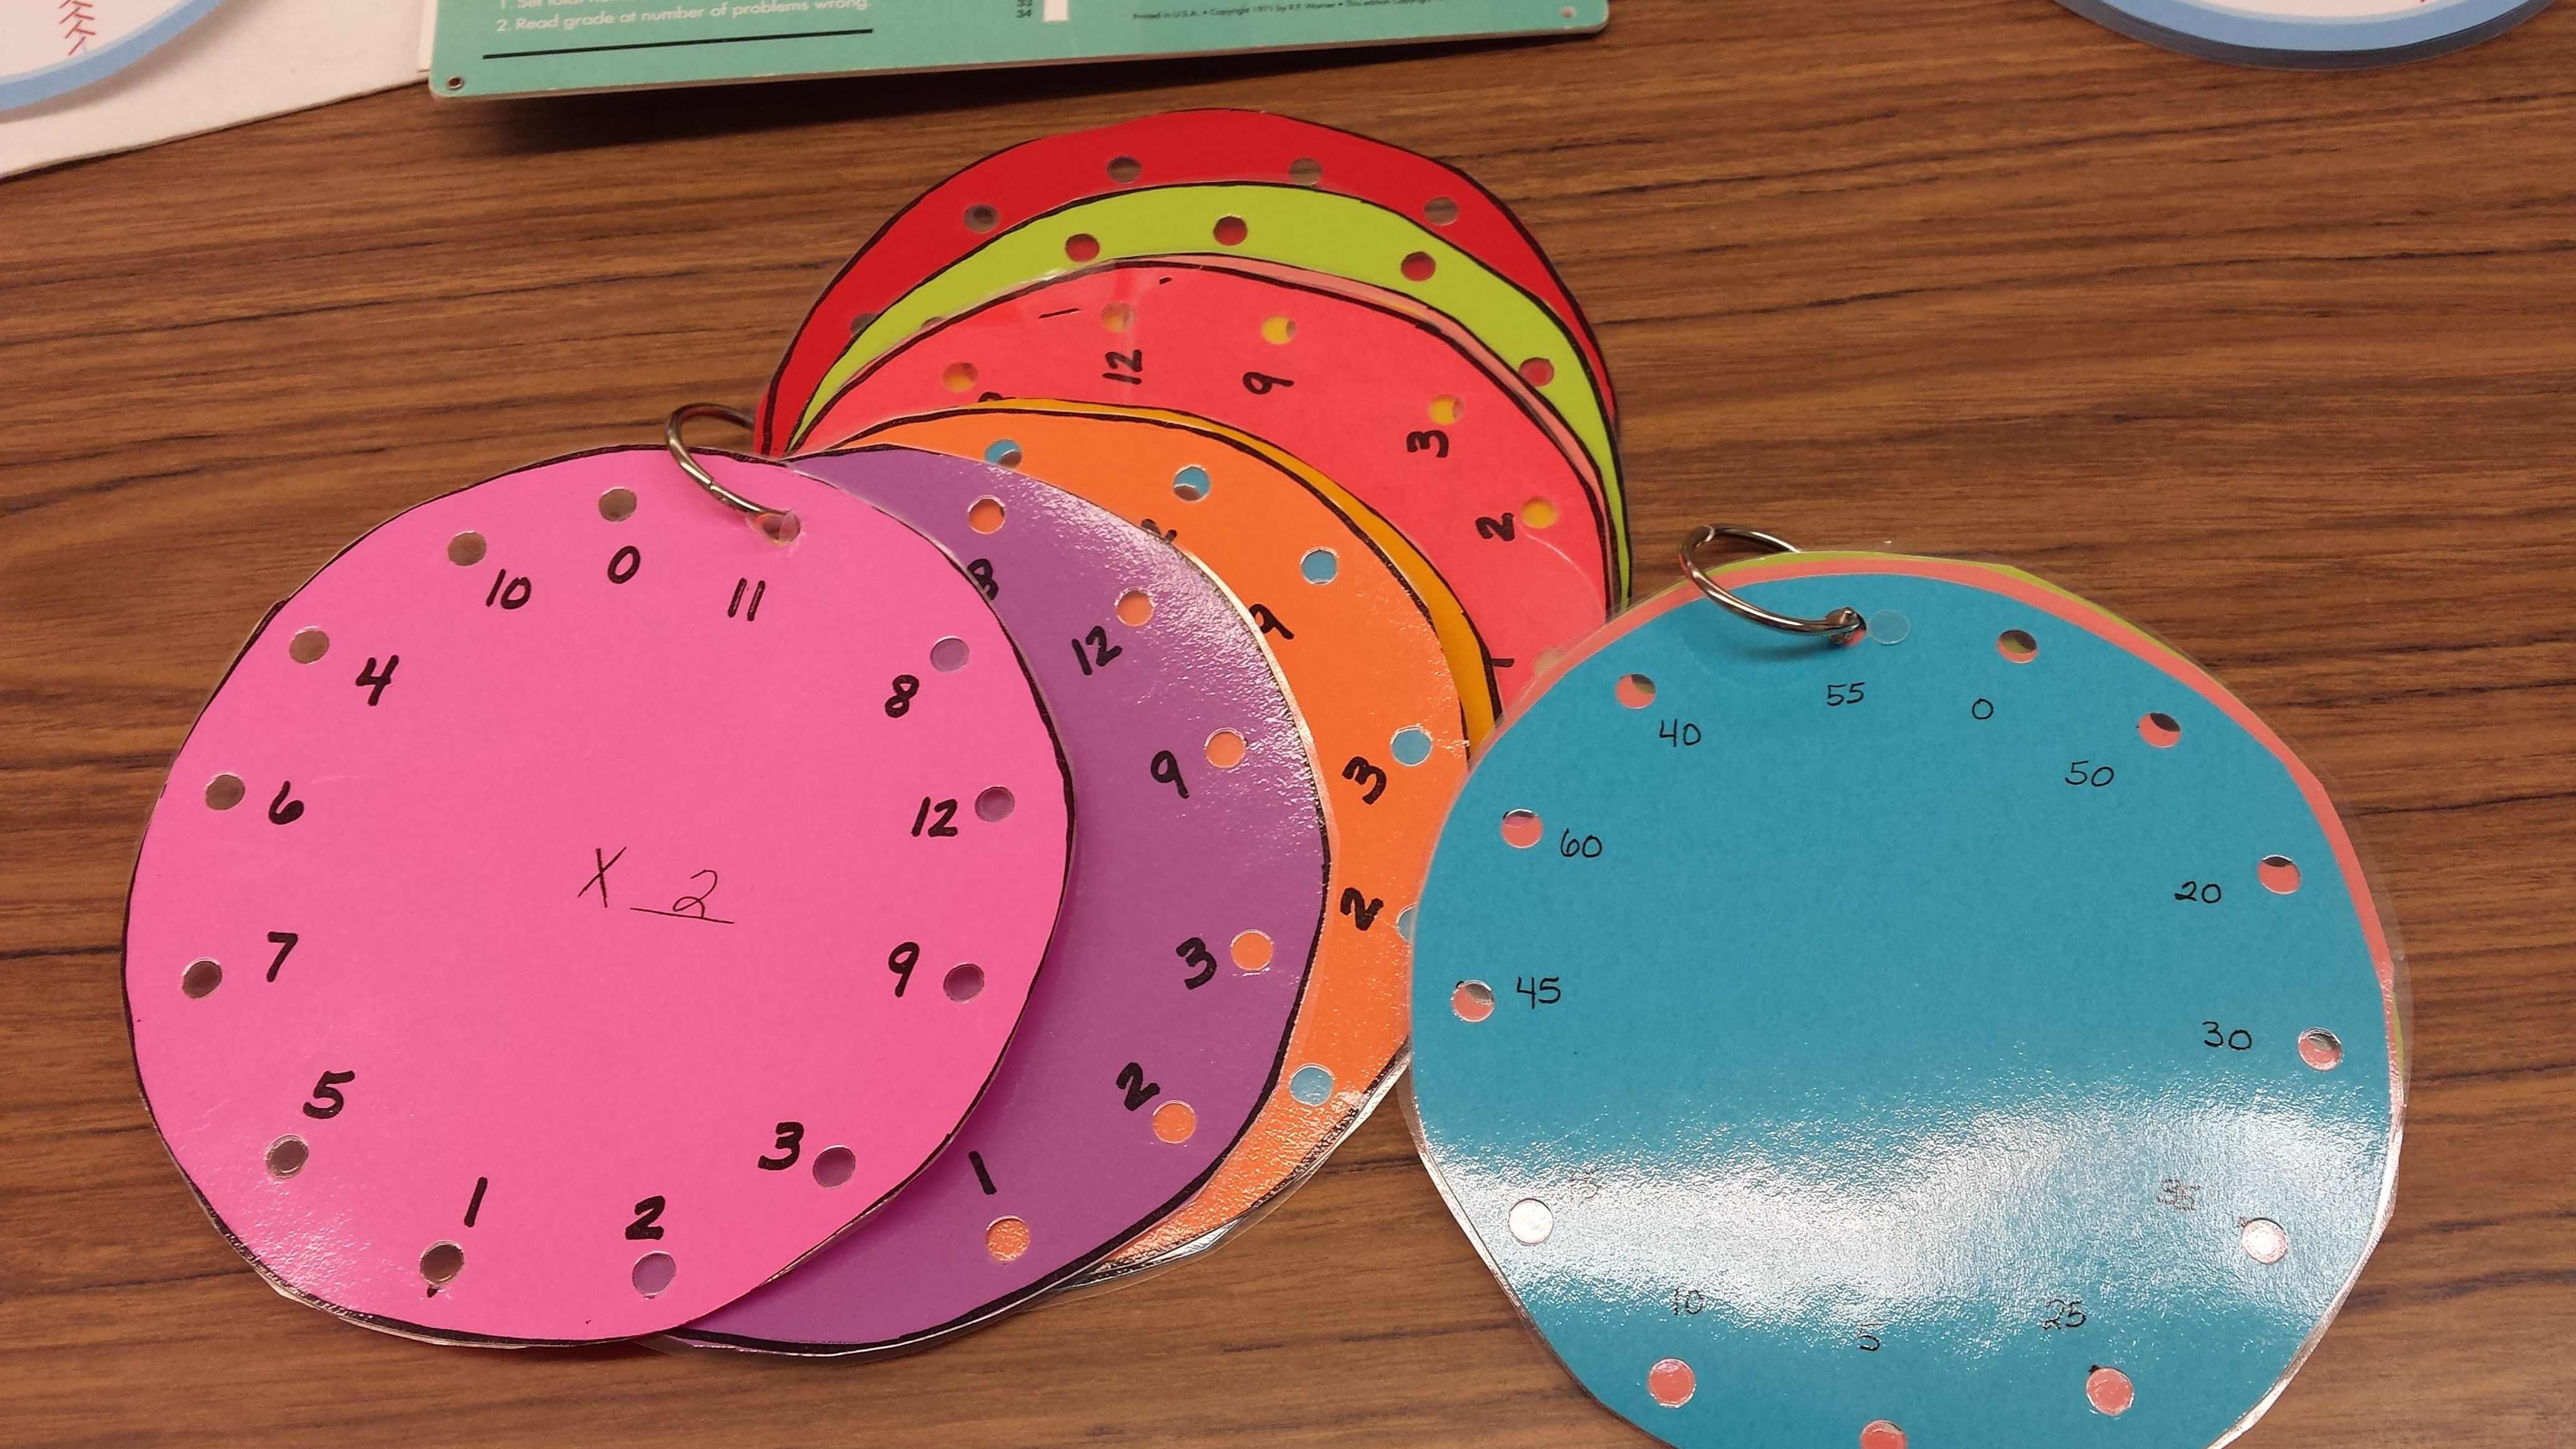 I Made Multiplication Wheels For Students To Practice